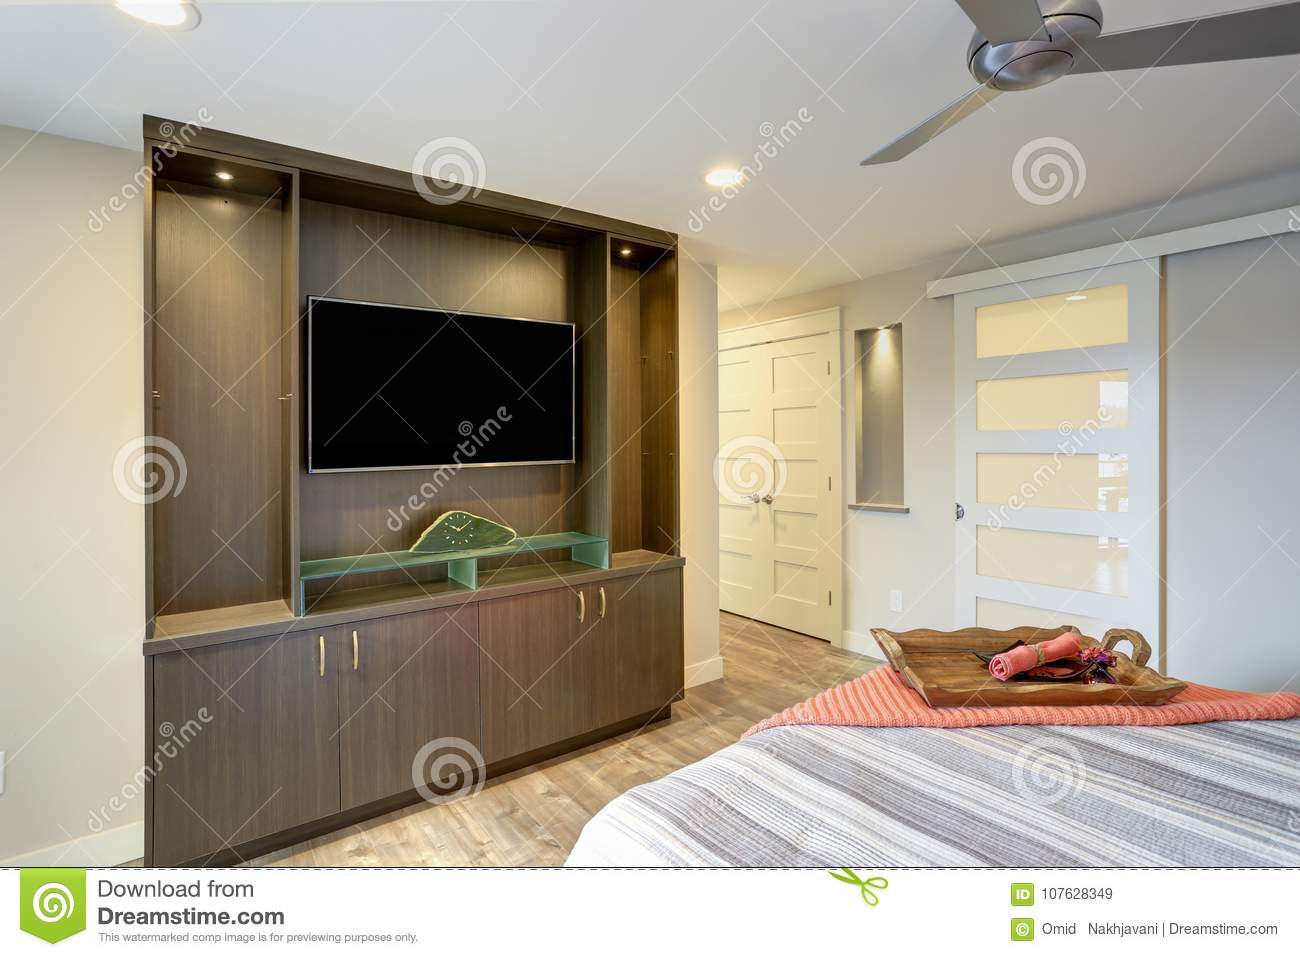 Contemporary Condo Home Bedroom Interior Stock Image Image Of Nightstand Clean 107628349